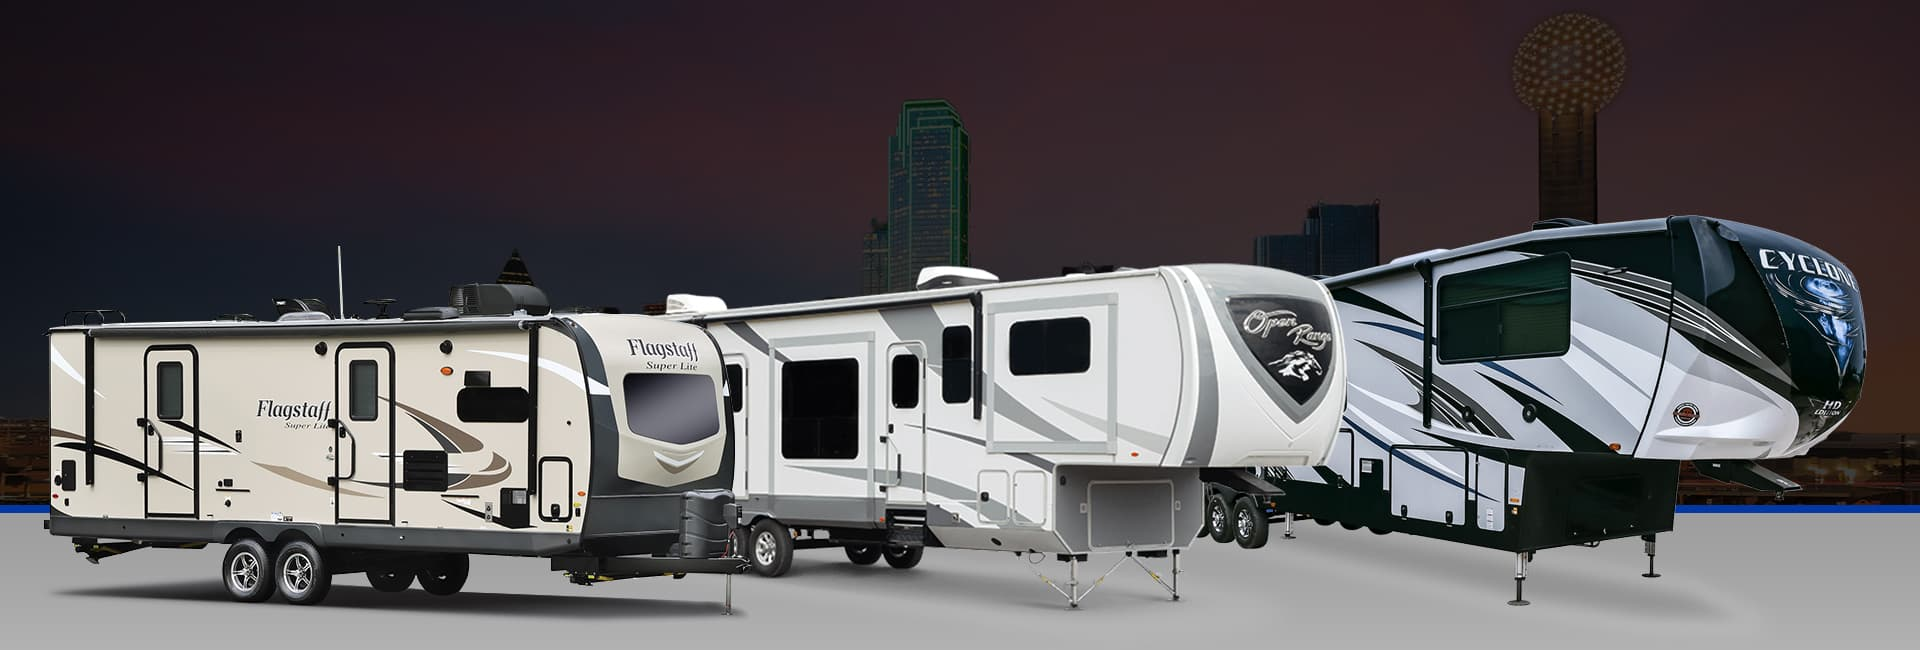 Grand Design Reflection, Grand Design Imagine XLS, and Jayco RVs